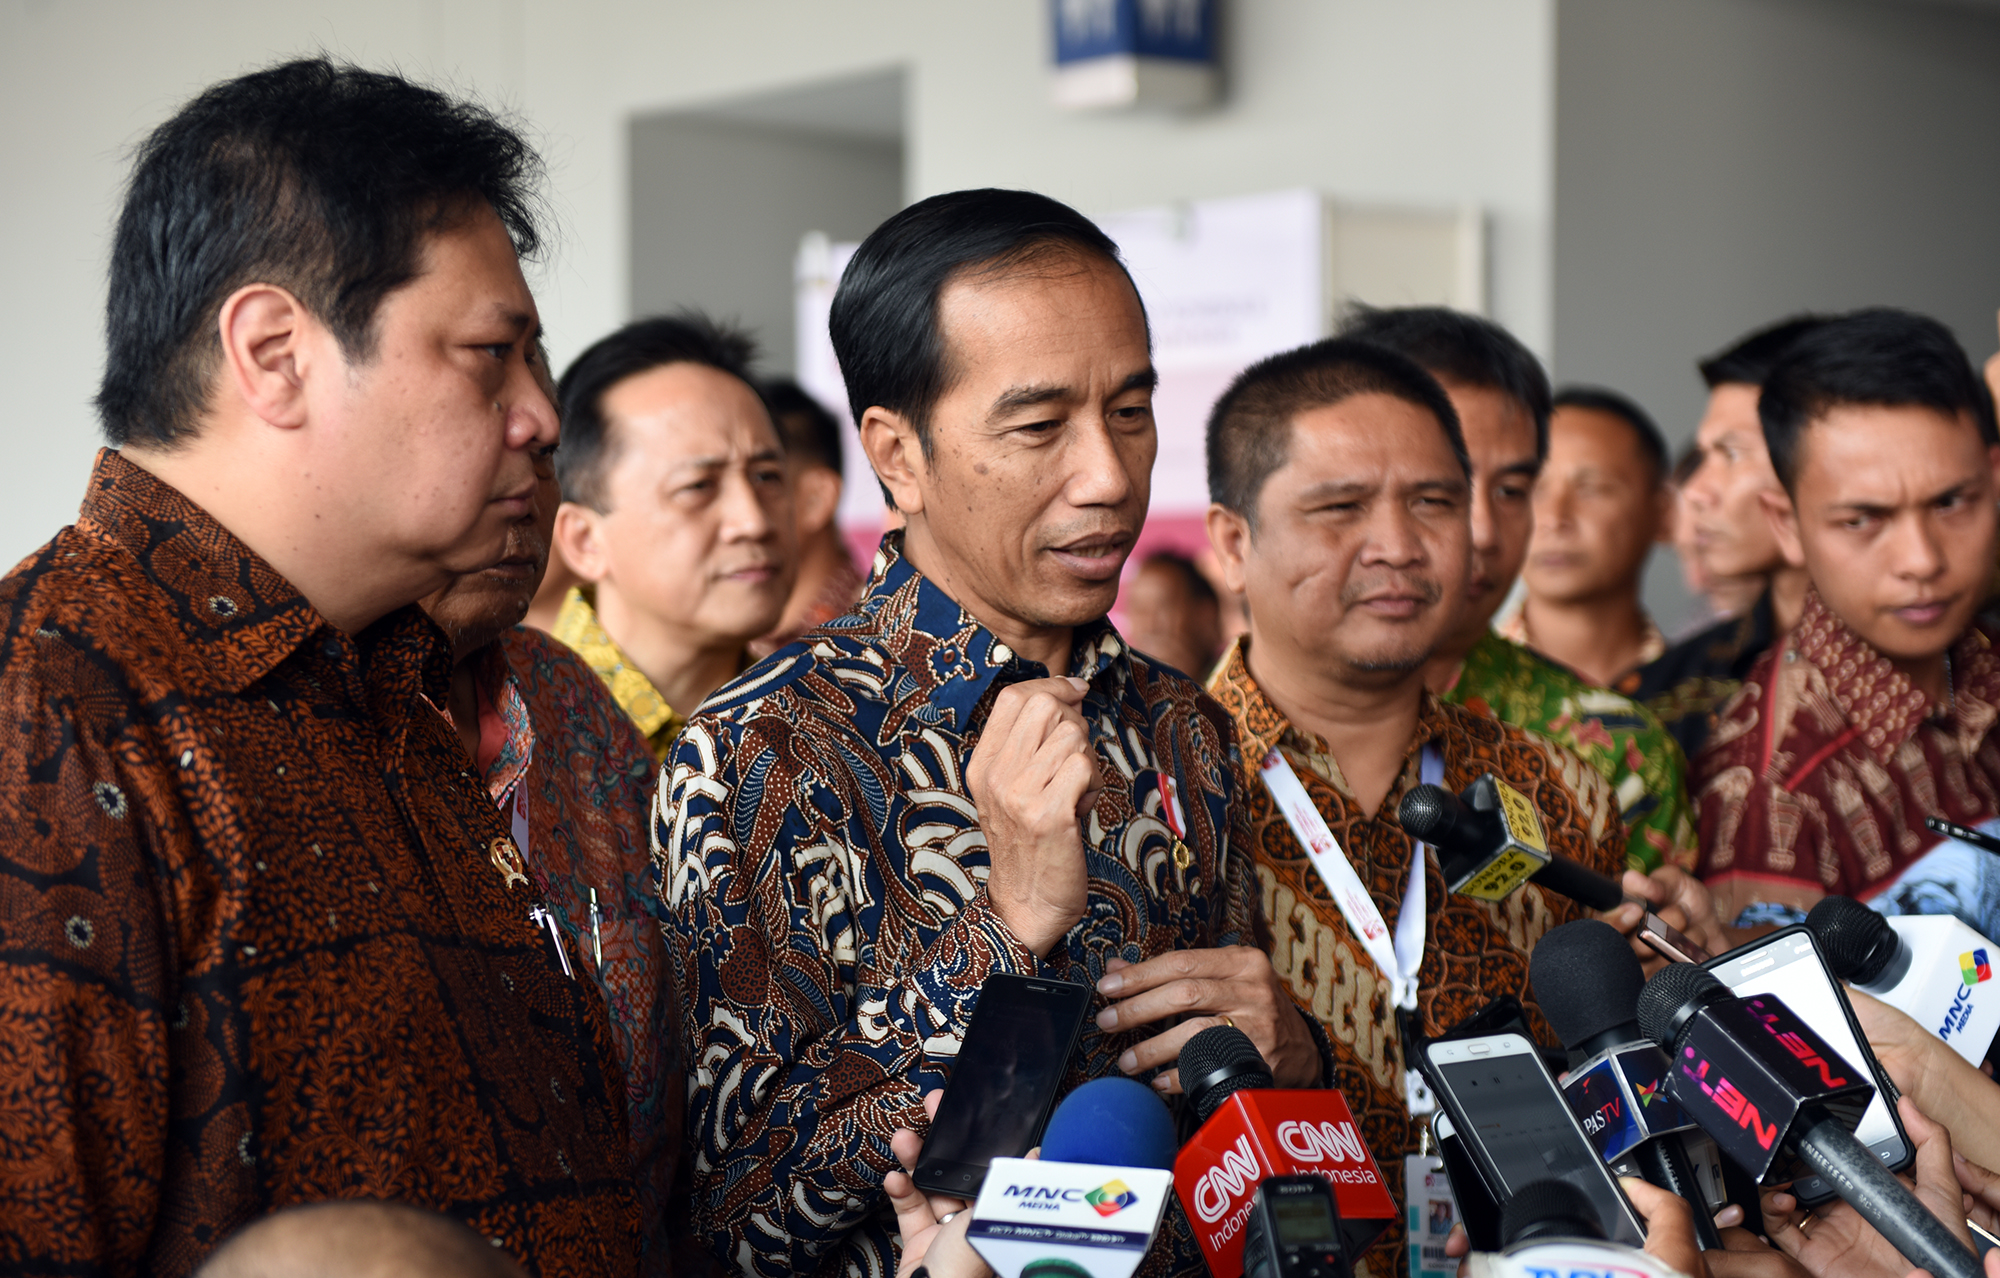 President Jokowi answers the journalists' questions after visiting IFEX 2017, at JI Expo Kemayoran, Jakarta, on Saturday (11/3) morning (Photo: PR/Anggun)